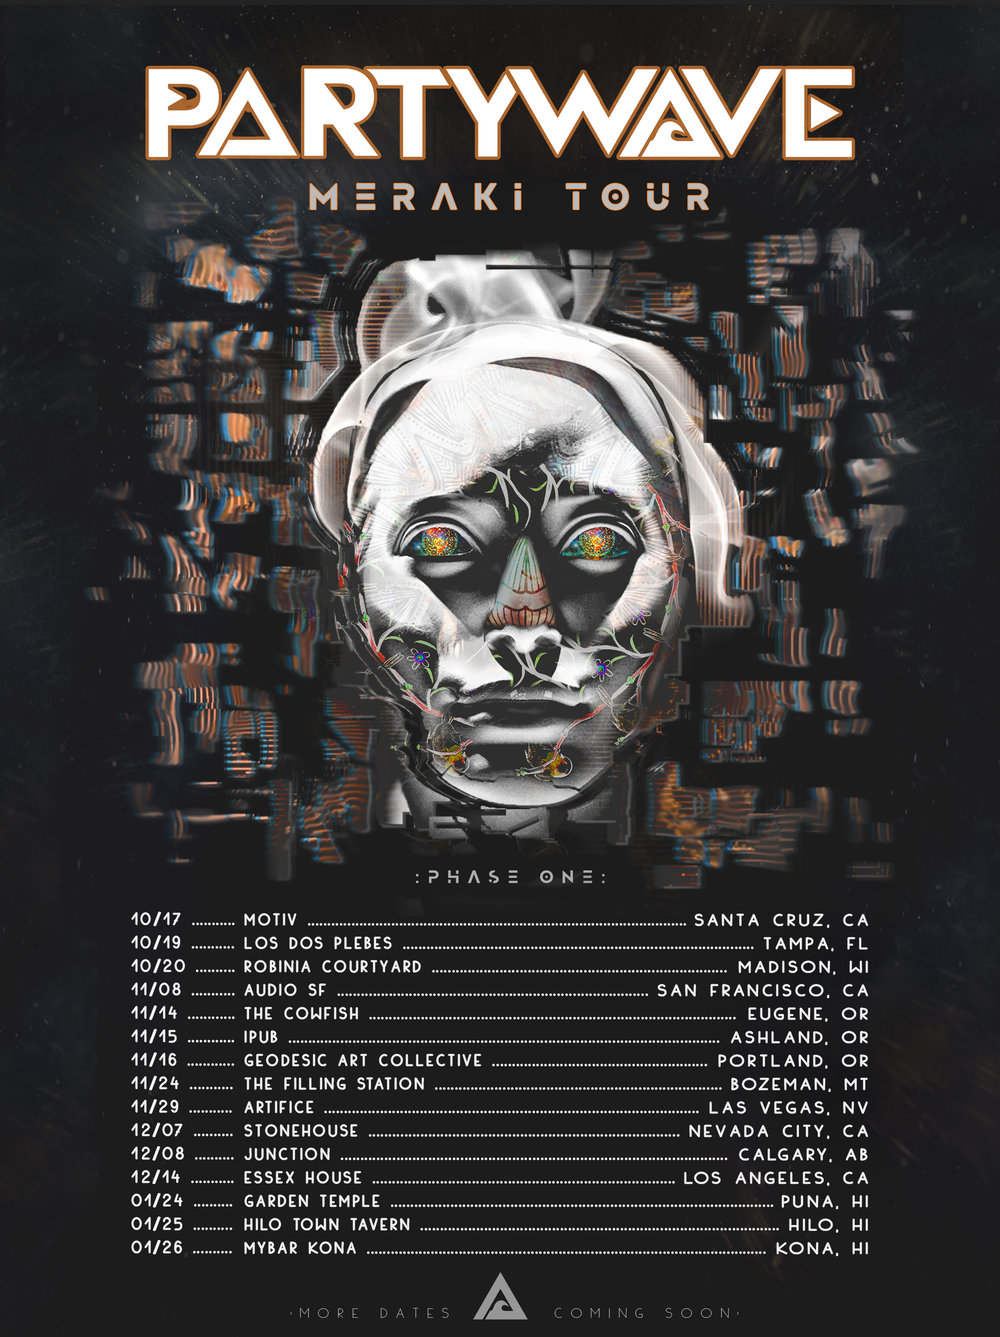 PartyWave - MERAKI TOUR FLYER [phase one dates].jpg